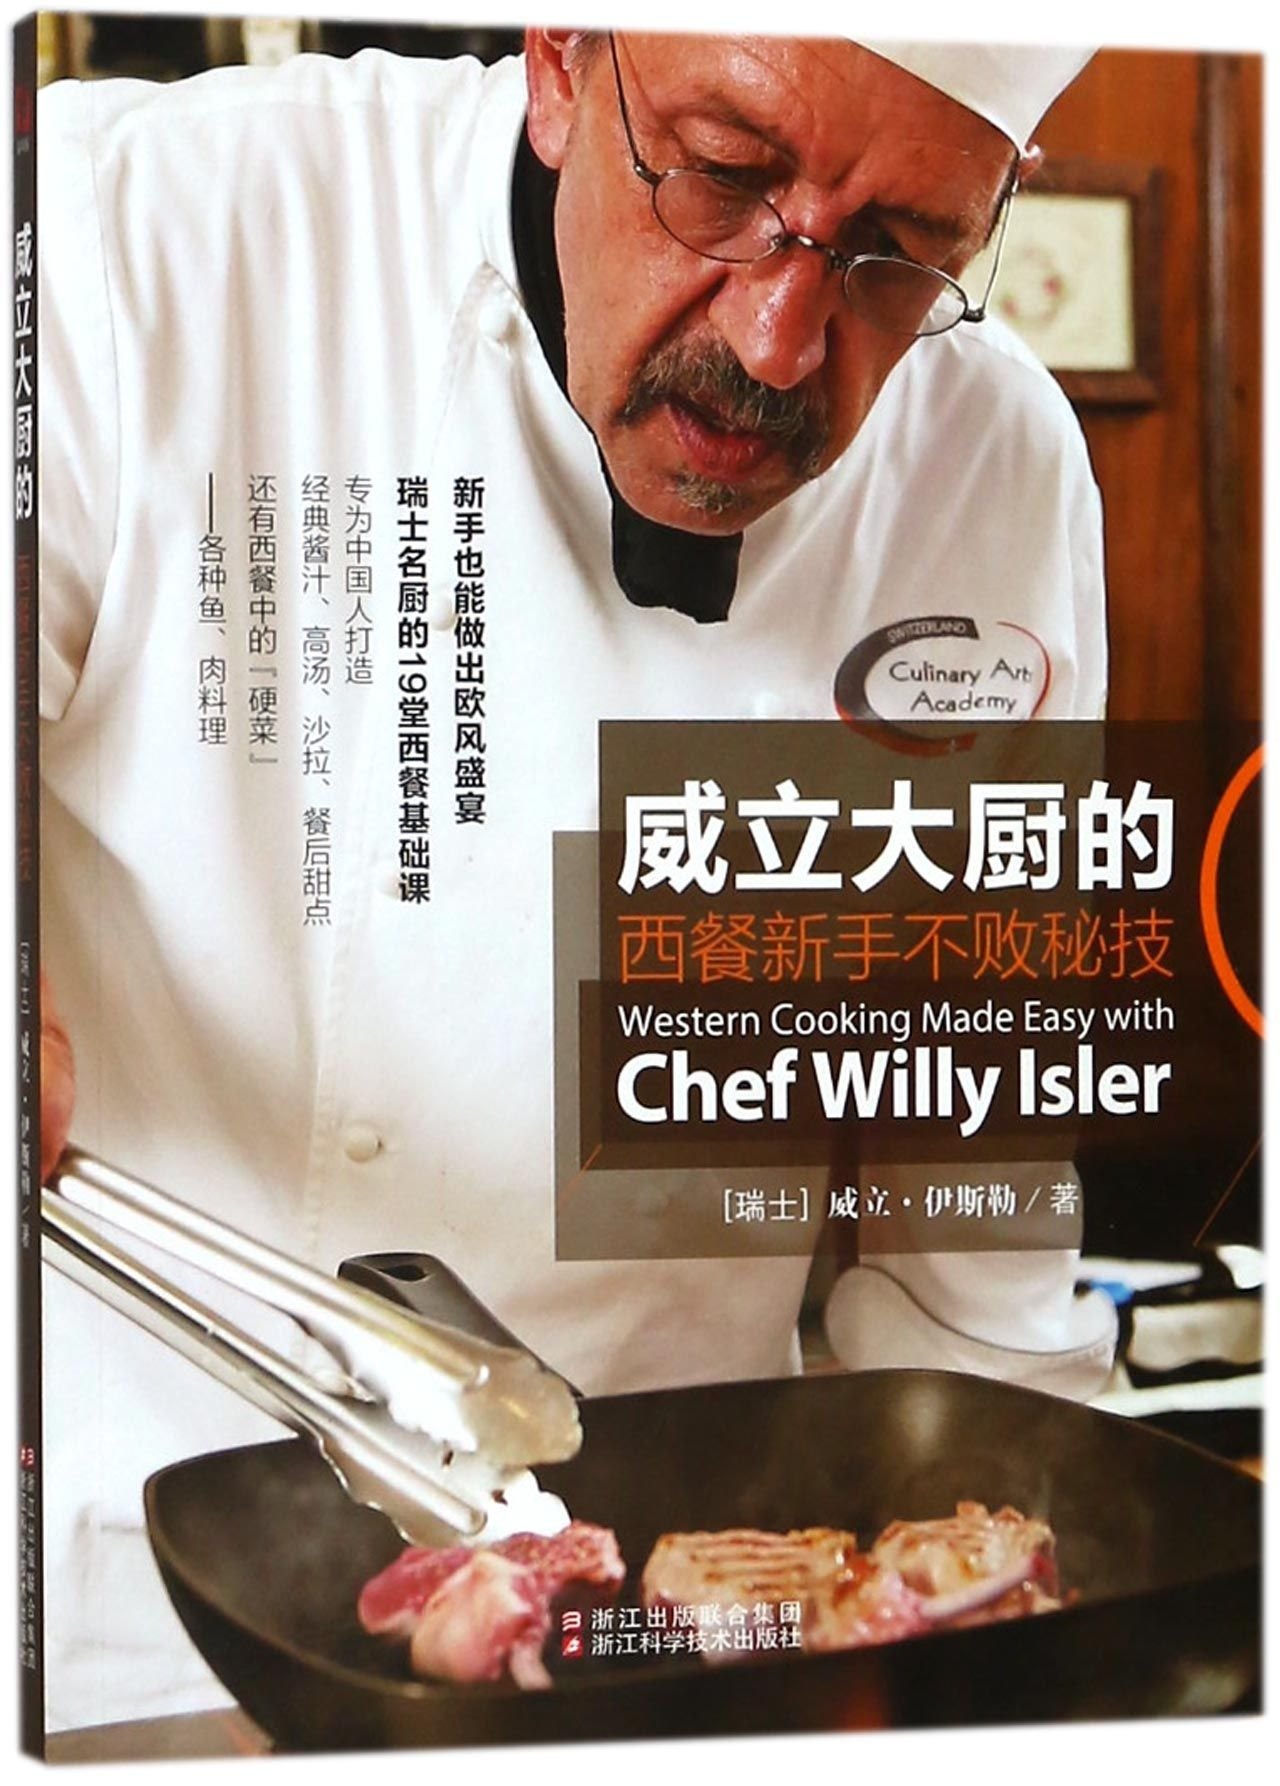 Download Western Cooking Made Easy with Chef Willy Isler (Chinese Edition) PDF